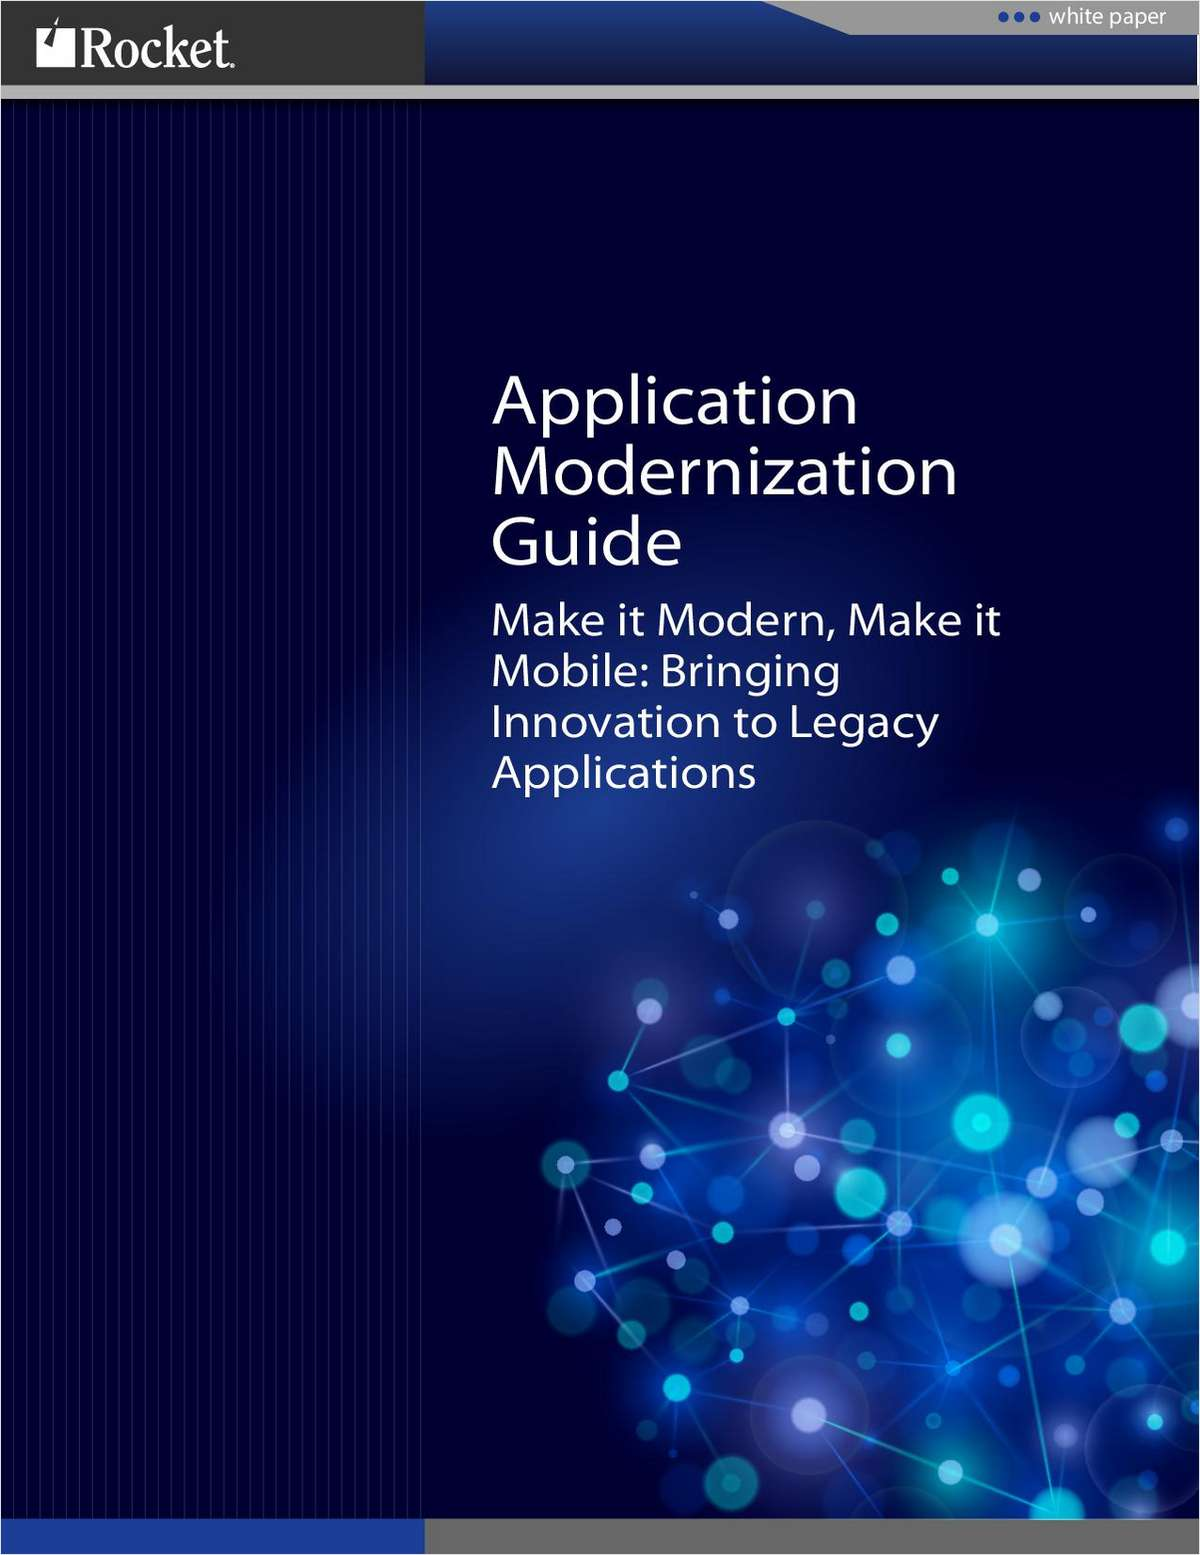 Make It Modern, Make it Mobile: How to Bring Innovation to Enterprise Systems